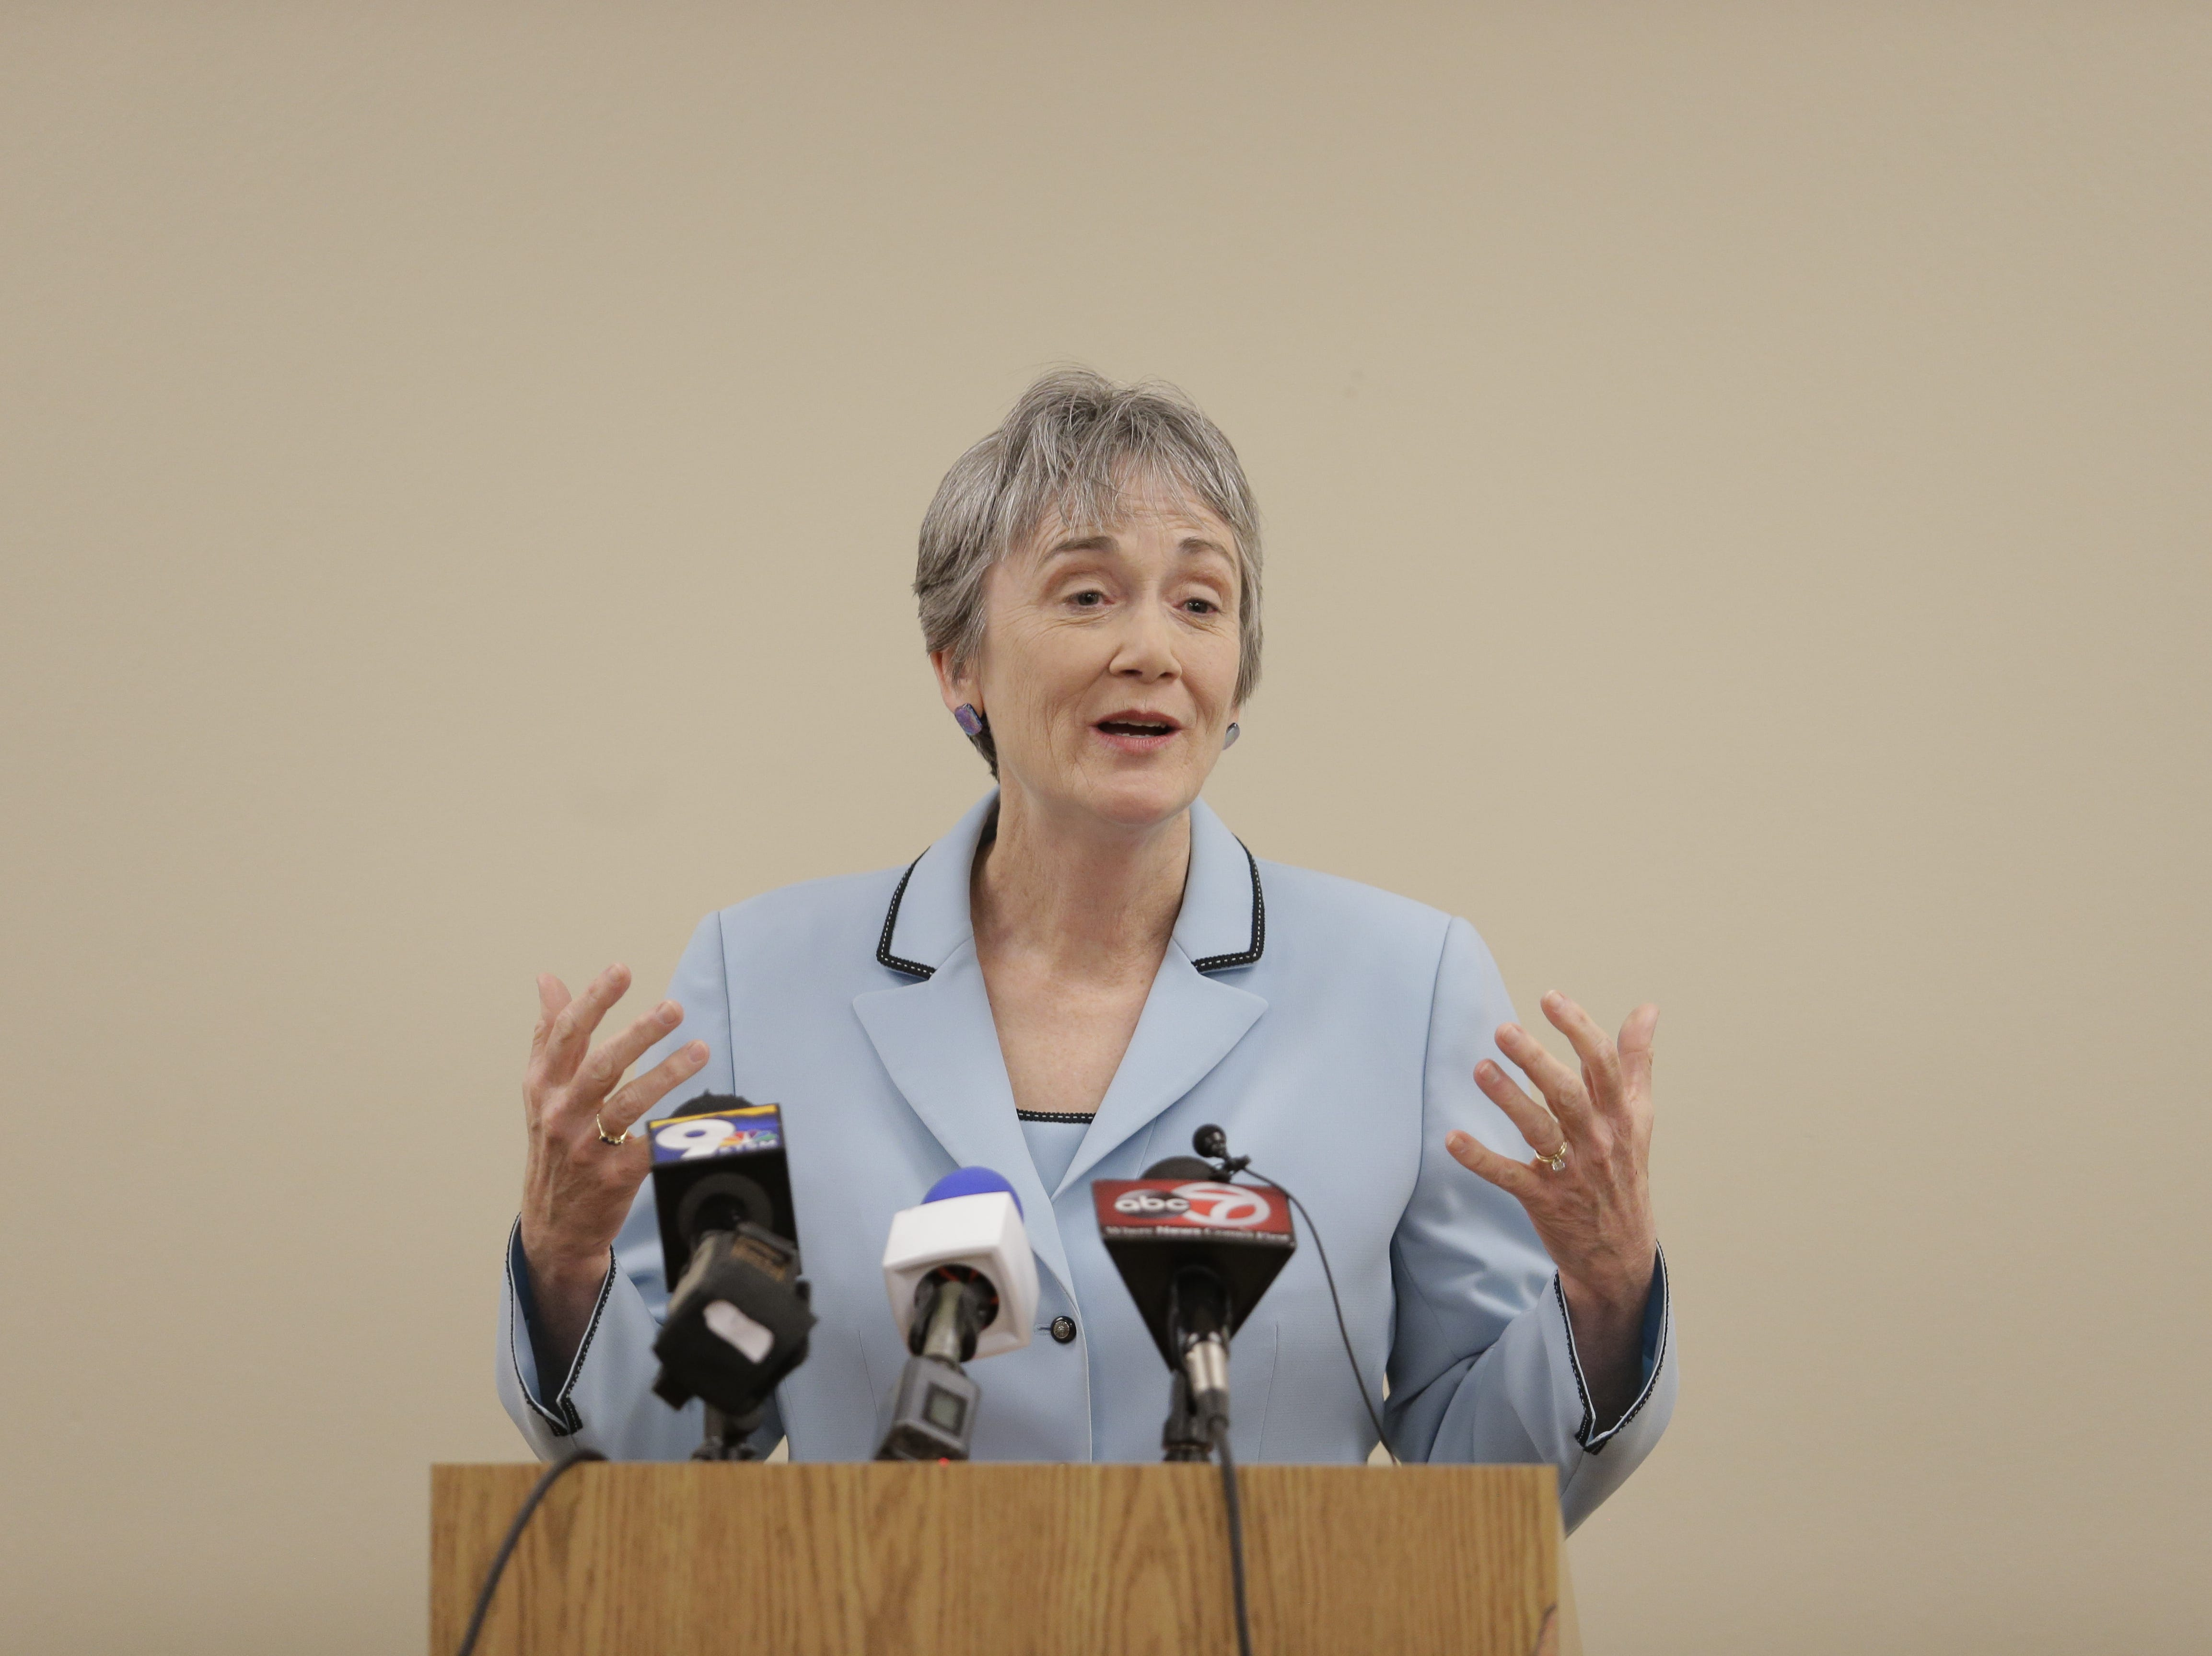 Heather Wilson, U.S. Secretary of the Air Force, is expected to become the next president of the University of Texas at El Paso.